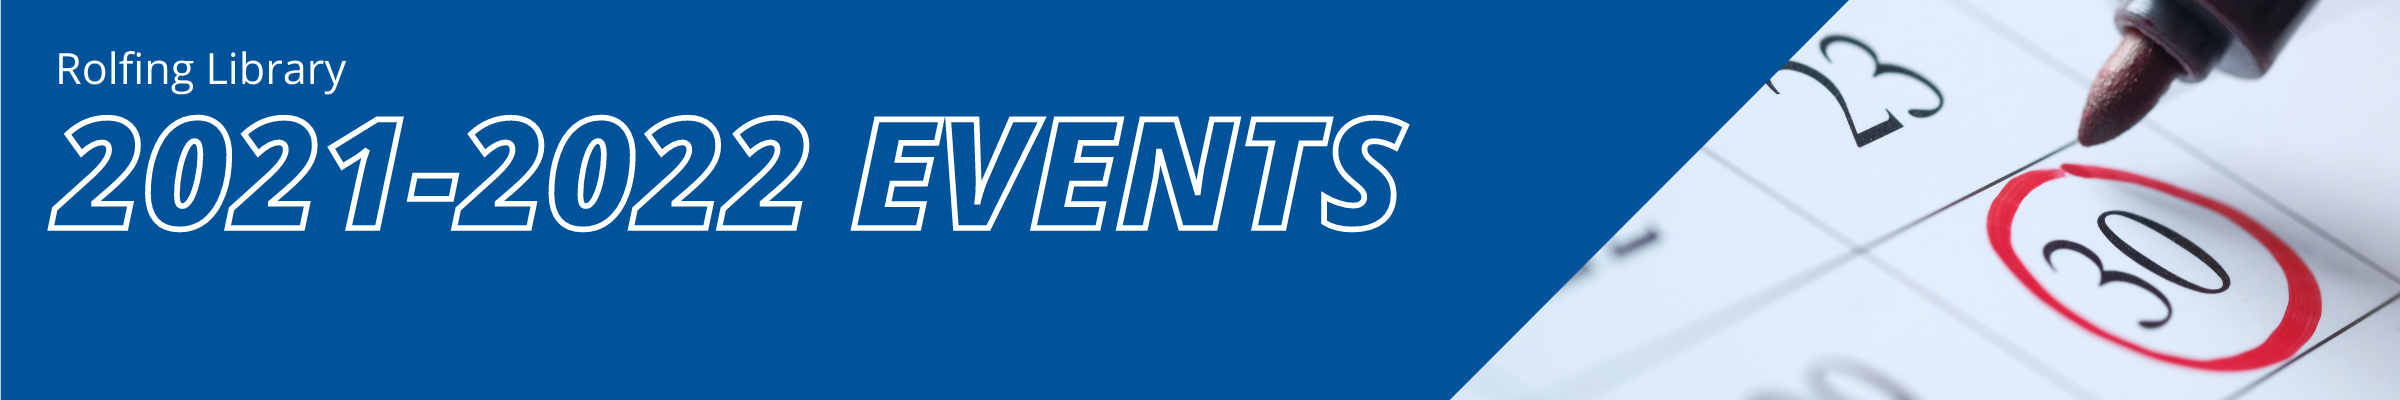 2021-2022 Library Events